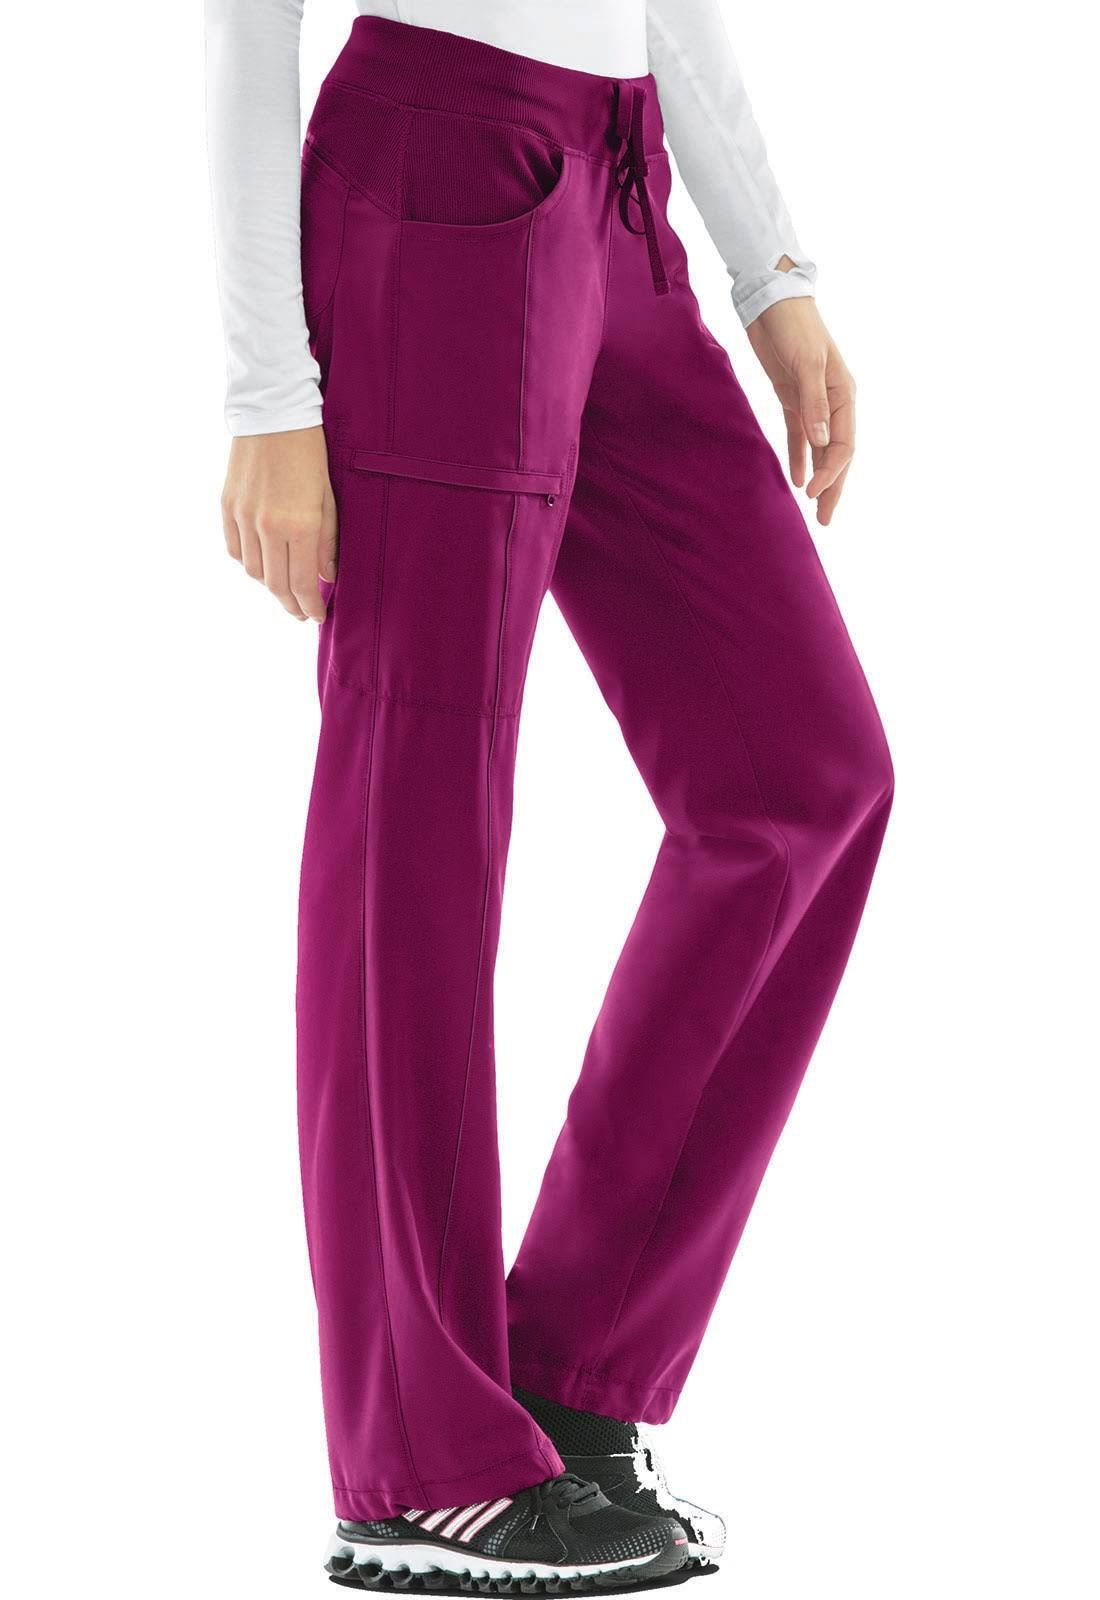 Cherokee Women's Infinity Low Rise Straight Leg Drawstring Pant - Wine, Medium